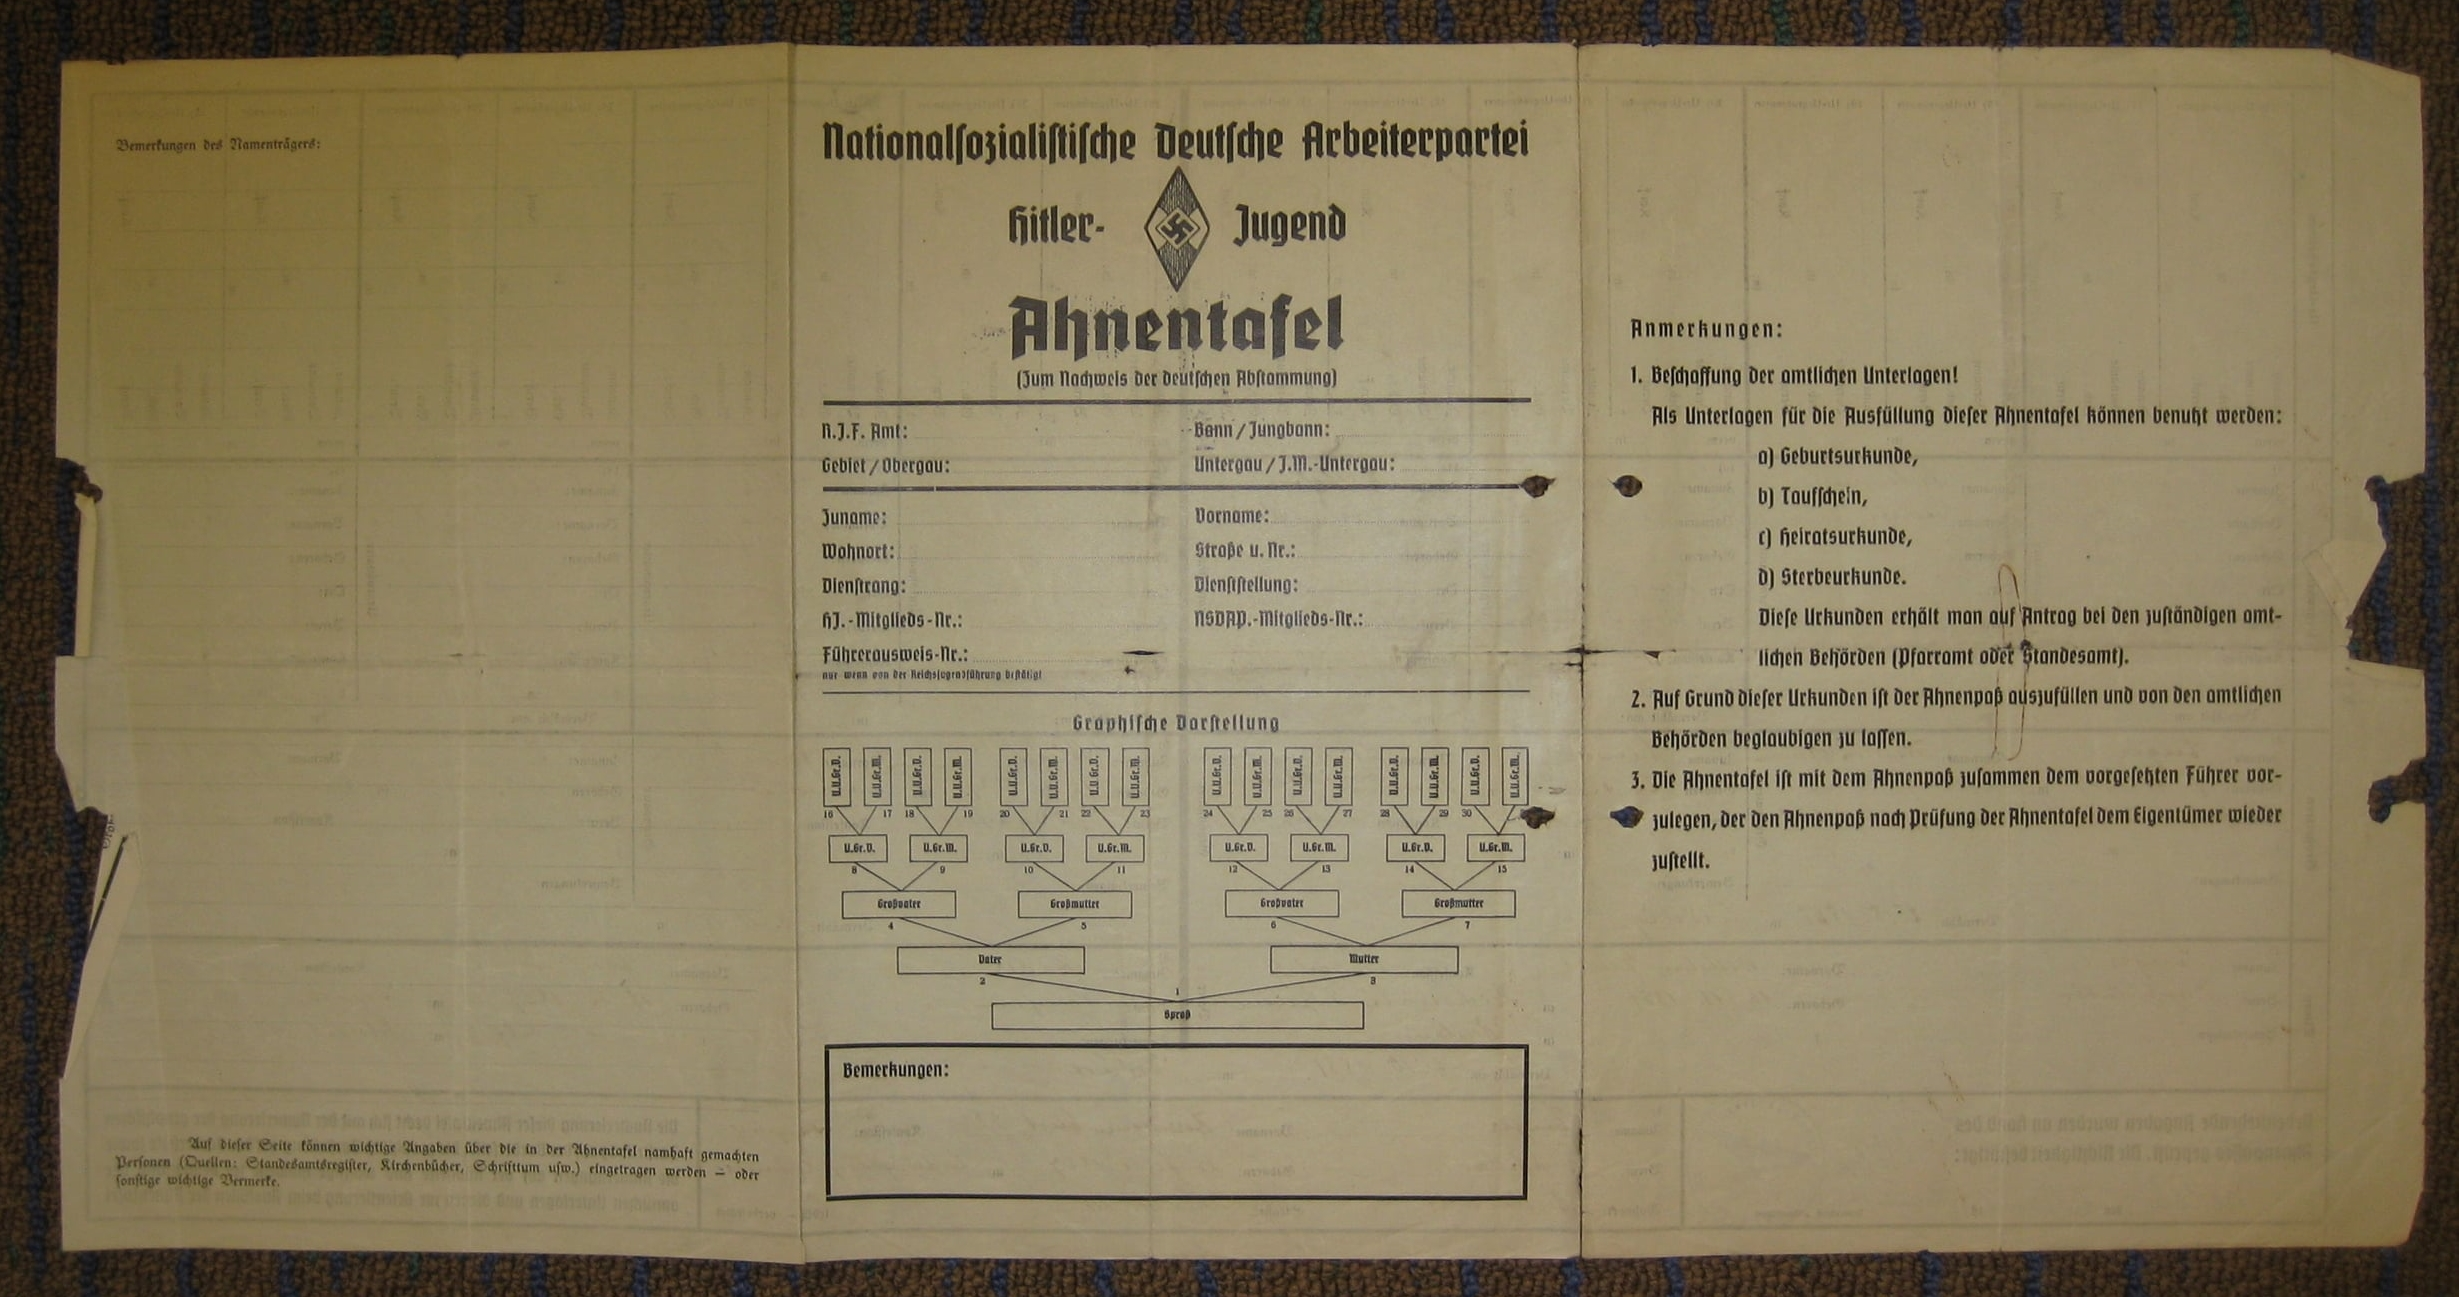 Ahnentafel - Nazi document listing my family tree and lineage for three generations. This one belonged to my Aryan grandfather, Hermann Kurt Enger.